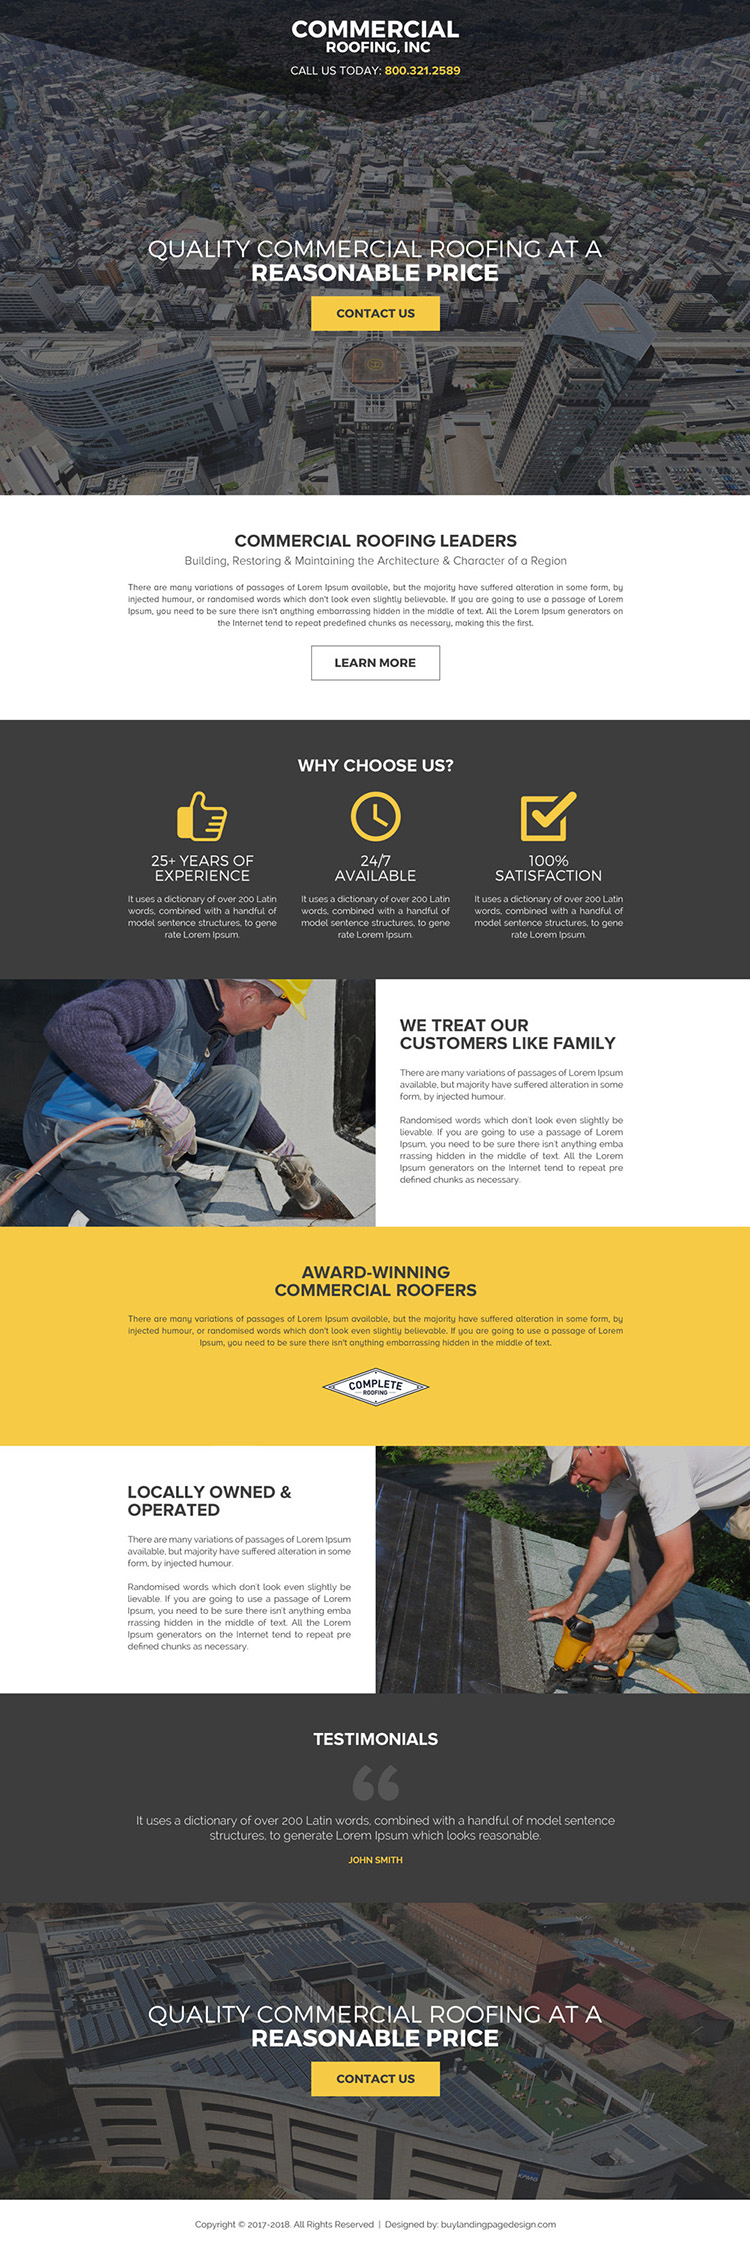 commercial roofing call to action responsive landing page design